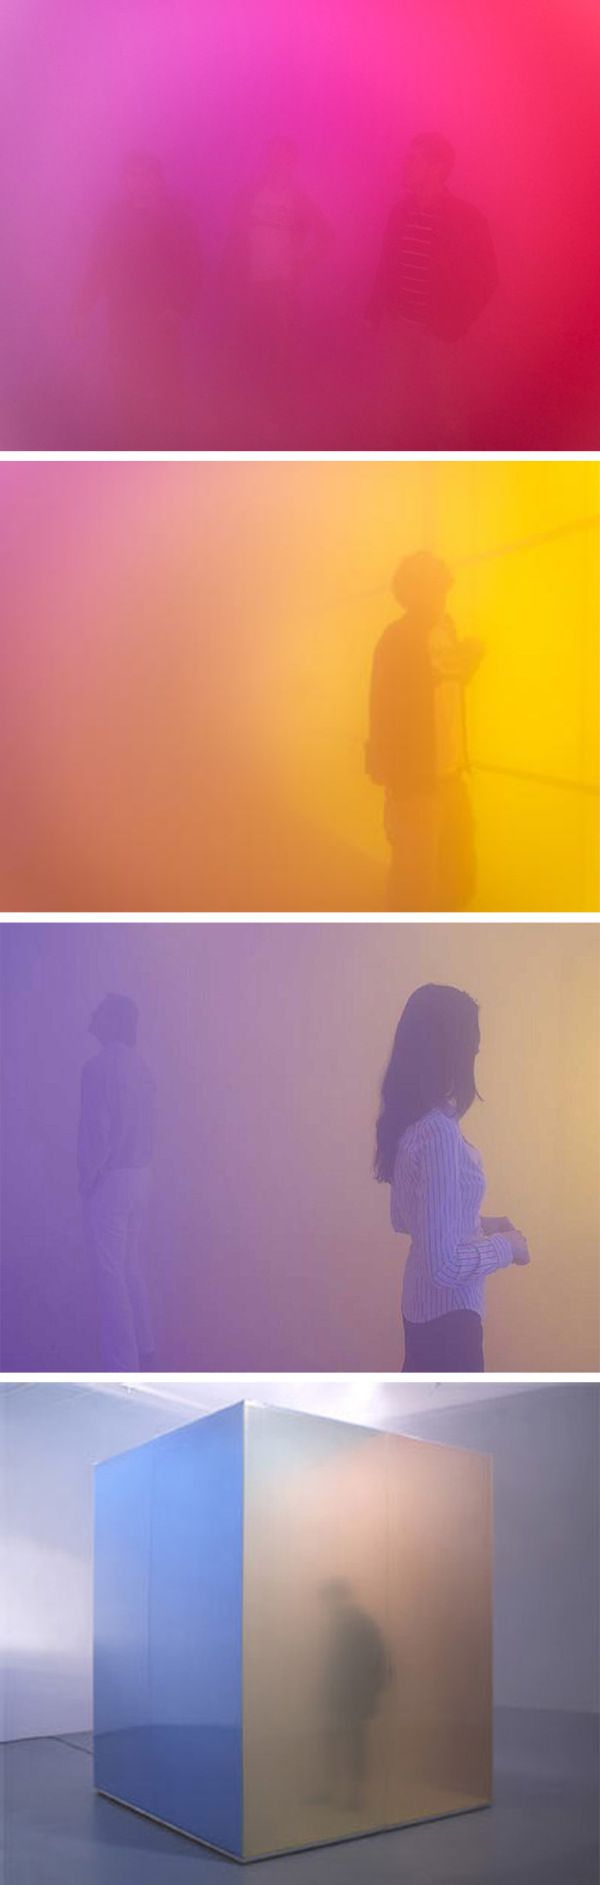 Artist Ann Veronica Janssens: Spacial Temporal Experience with Fog